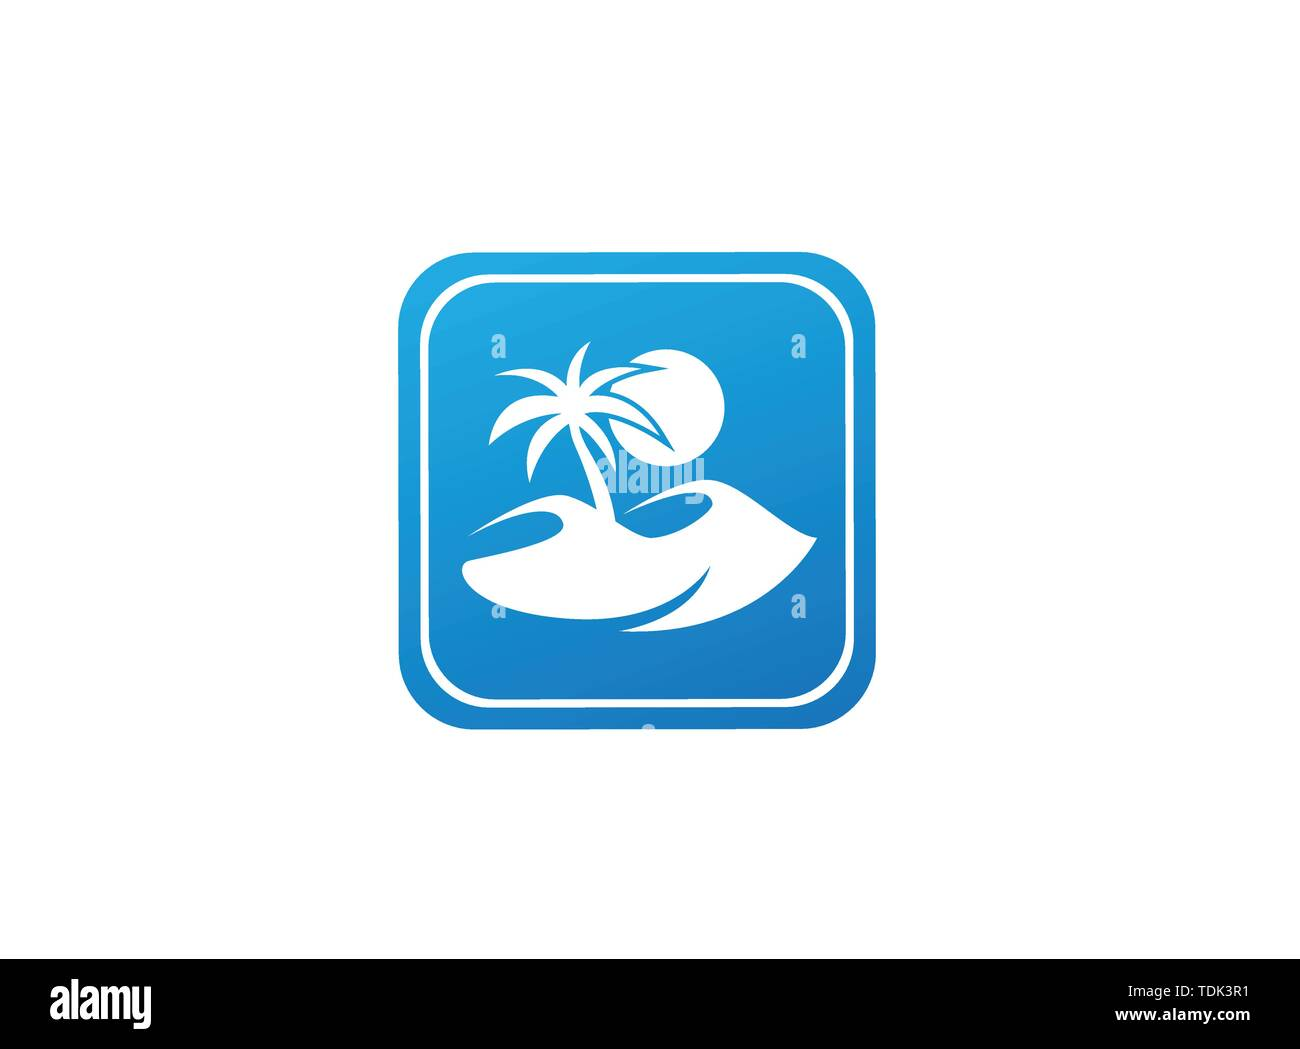 desert logo palm and sand and sun design illustration in the shape - Stock Image